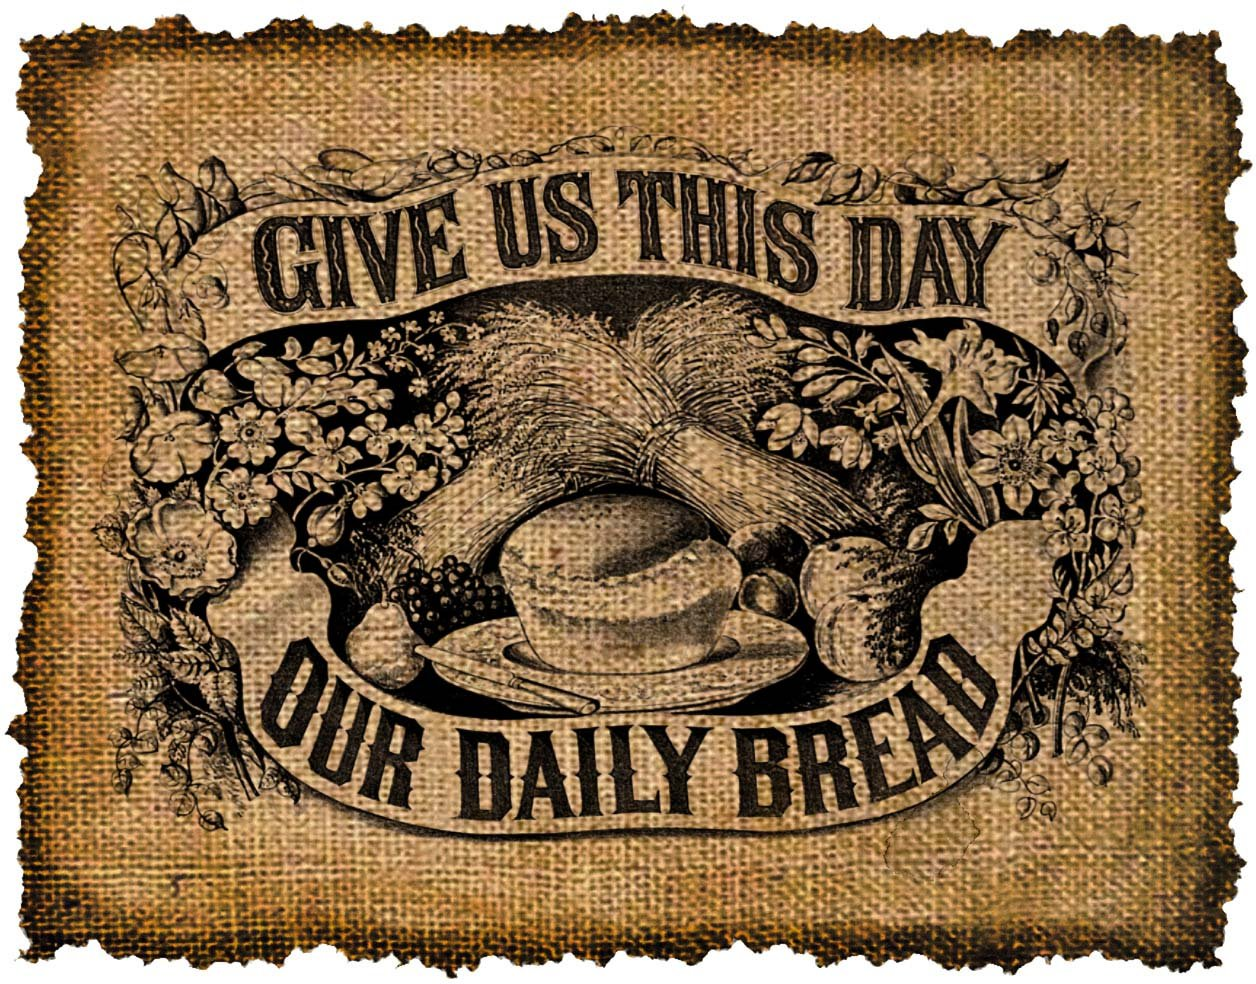 Vintage, Give Us This Day Our Daily Bread, Ephemera, Altered, Iron on, Digital Image No.419